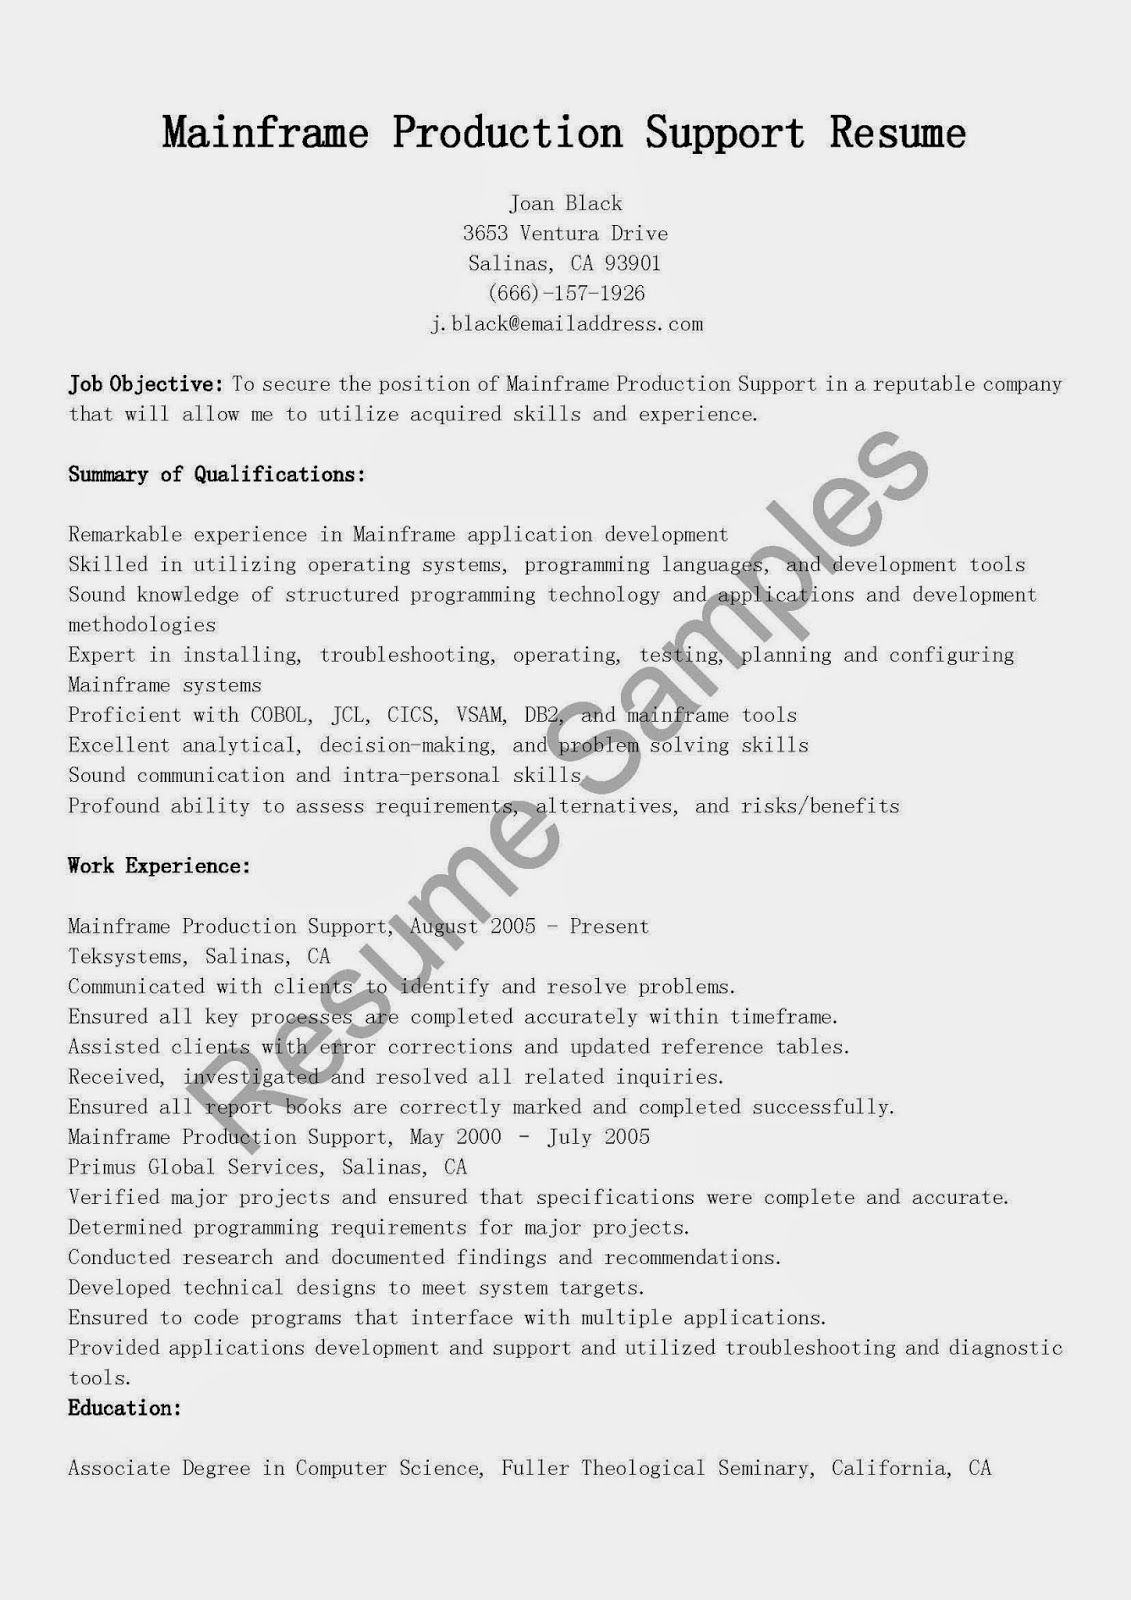 Mainframe Production Support Resume Sample Resume Best Resume Sample Resume